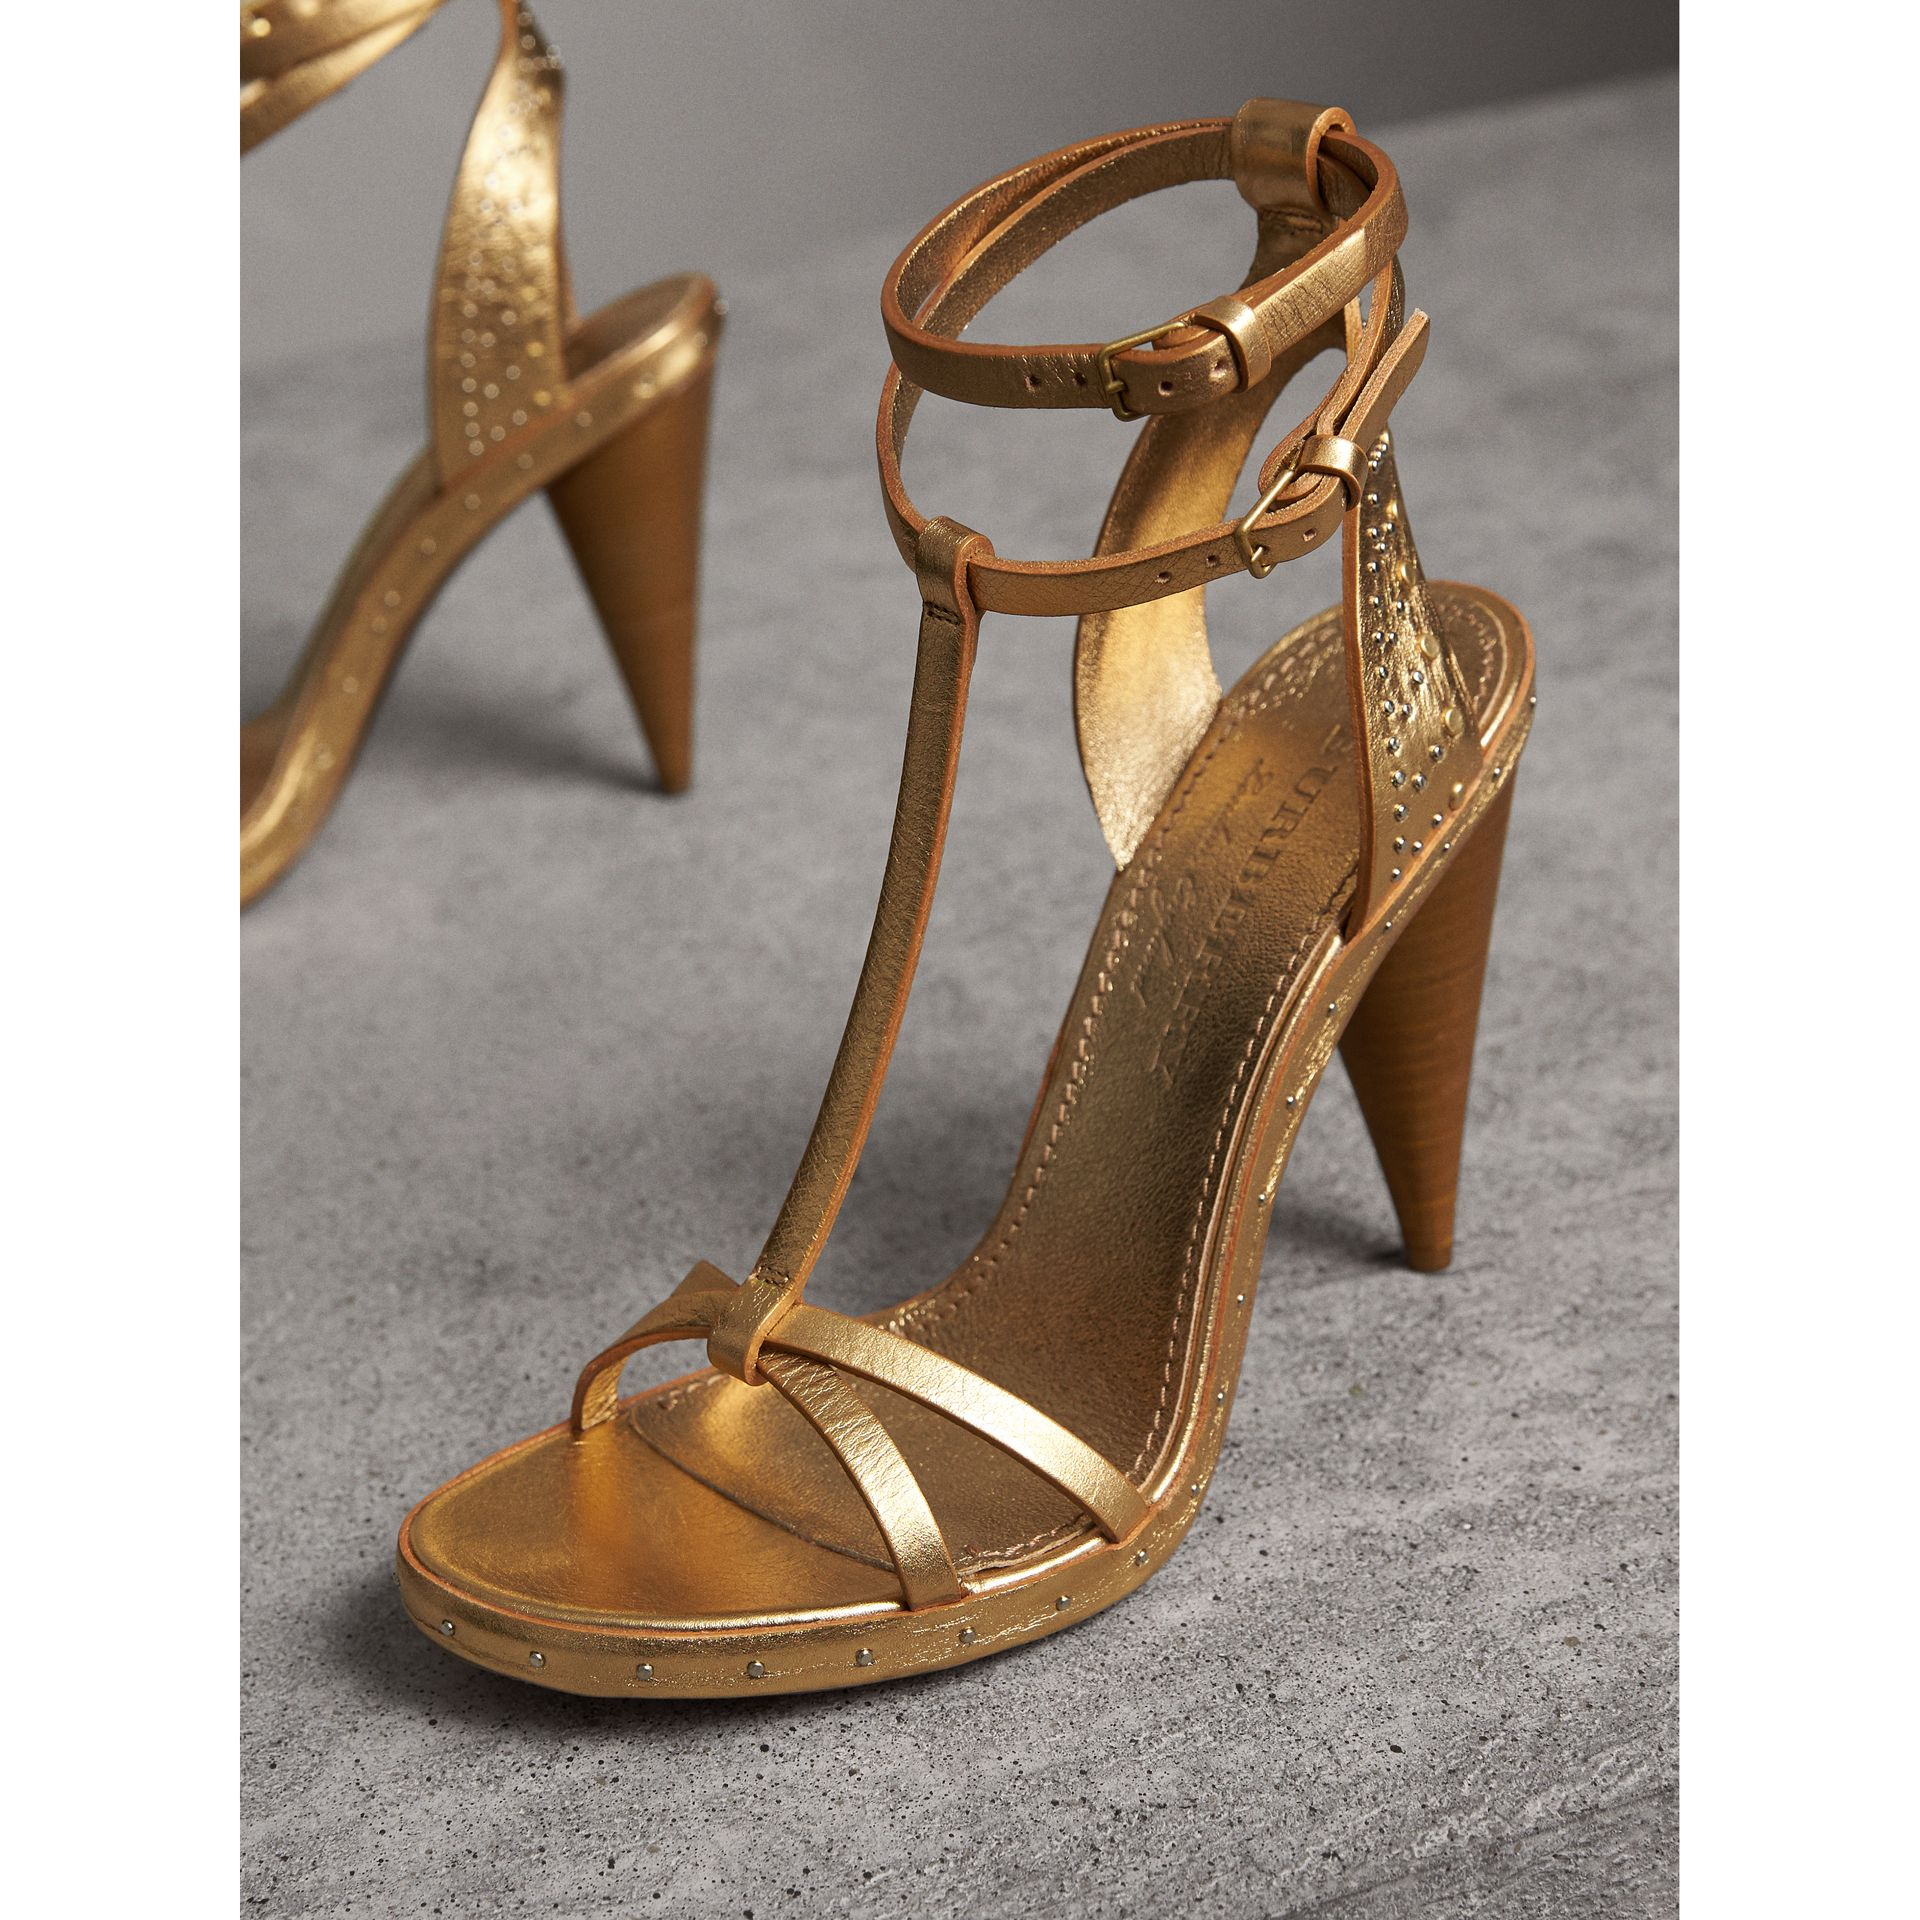 Riveted Metallic Leather High Cone-heel Sandals in Gold | Burberry United Kingdom - gallery image 4